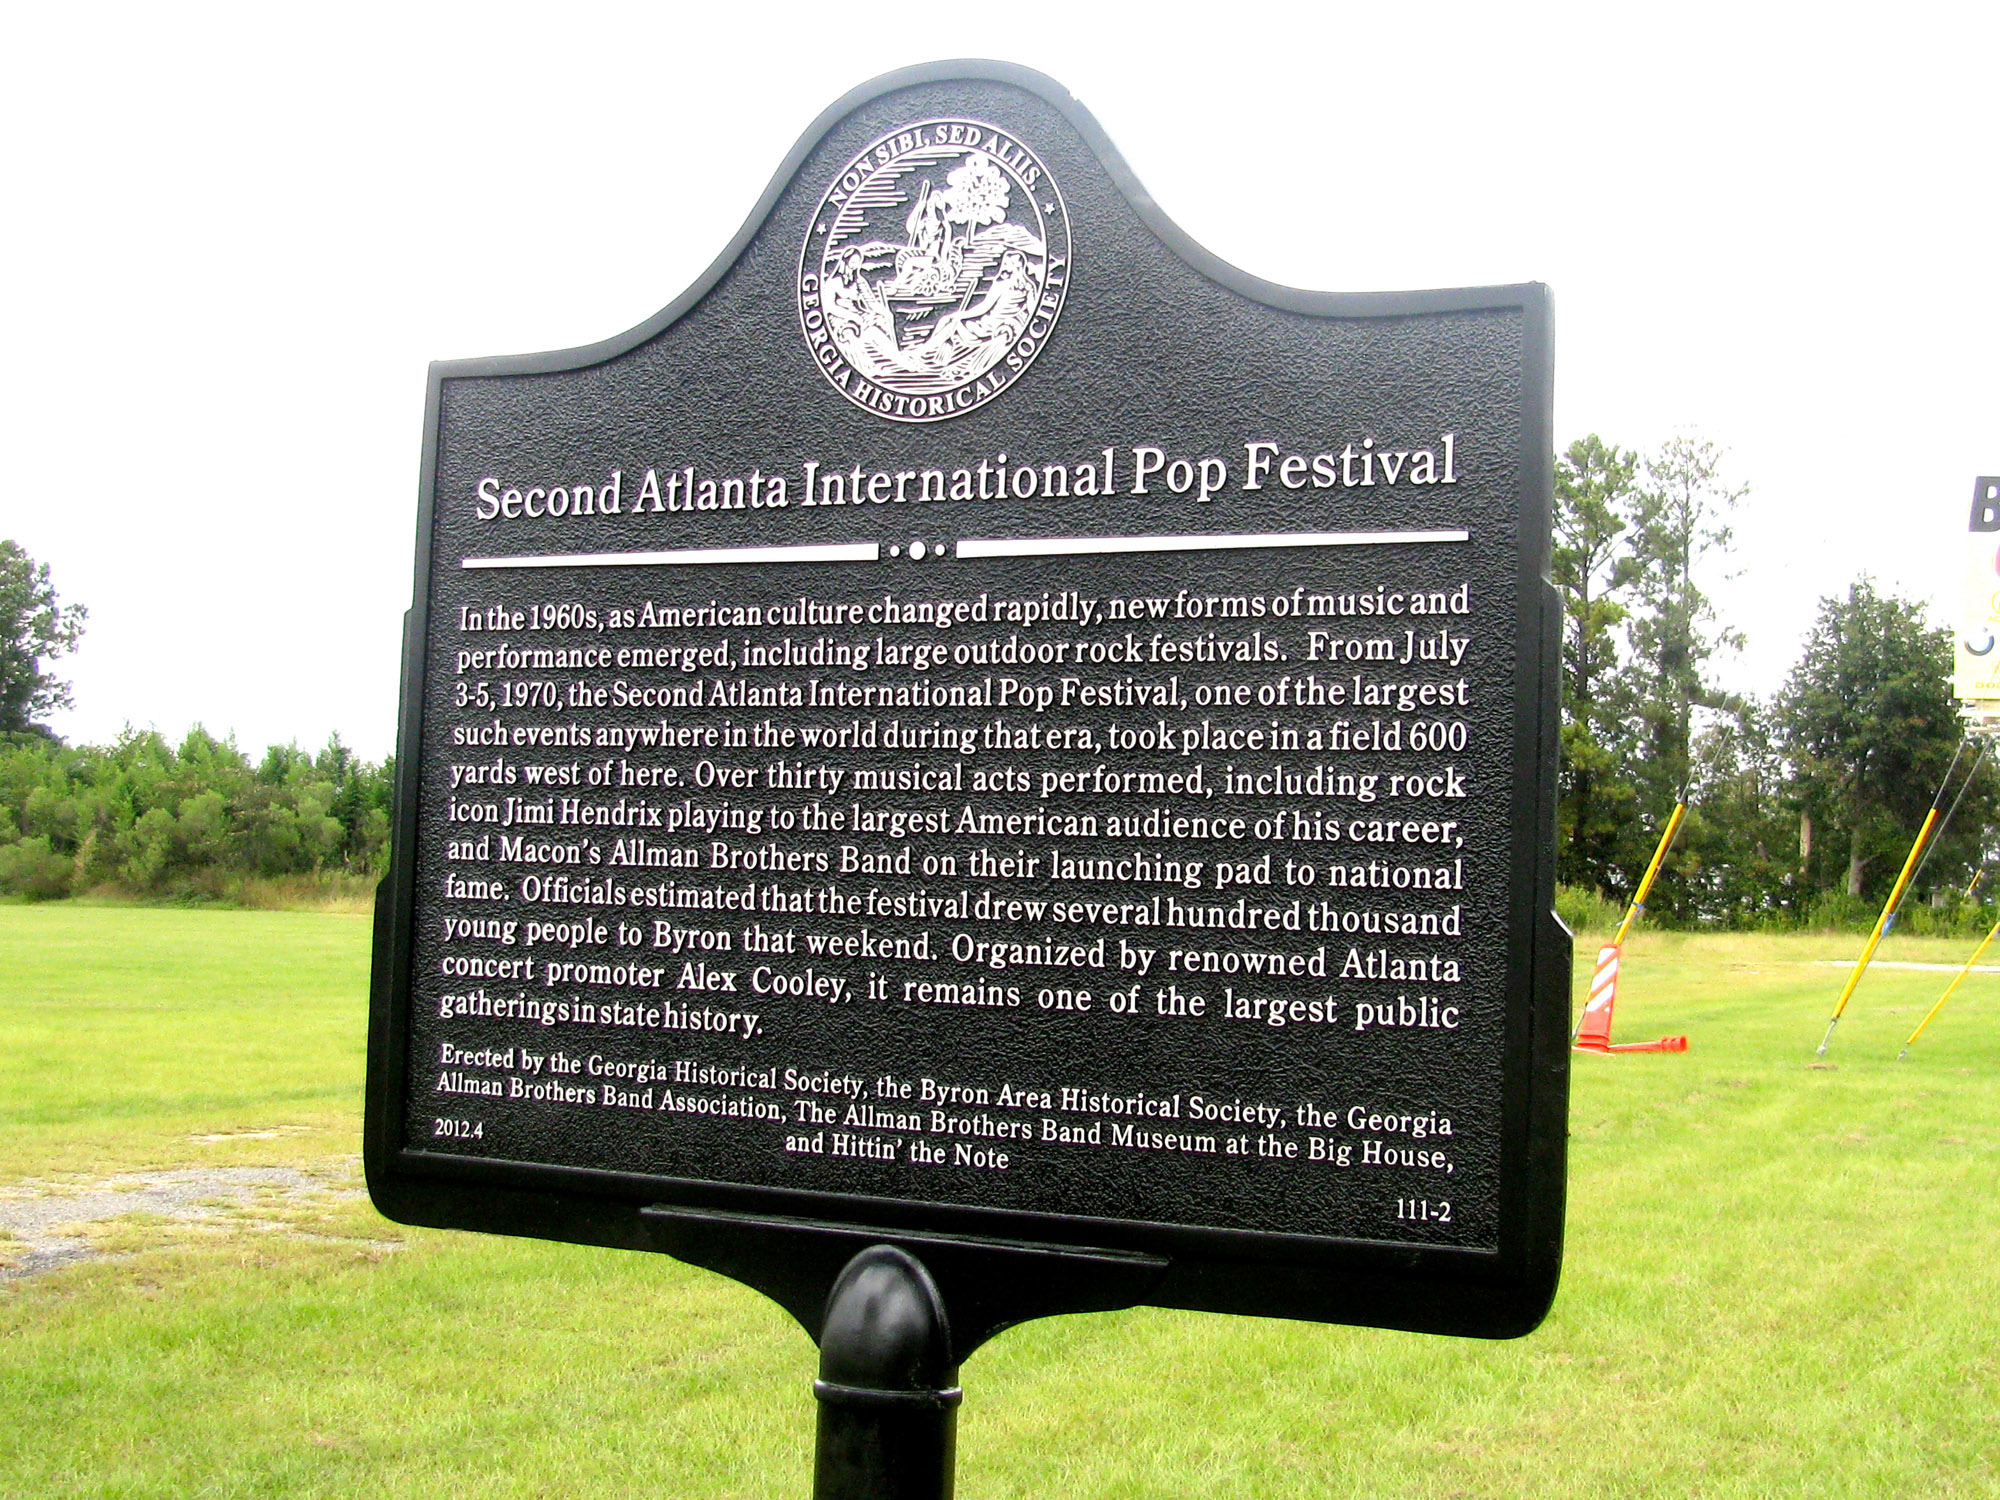 Allman Brothers Band historical marker in Byron, Georgia